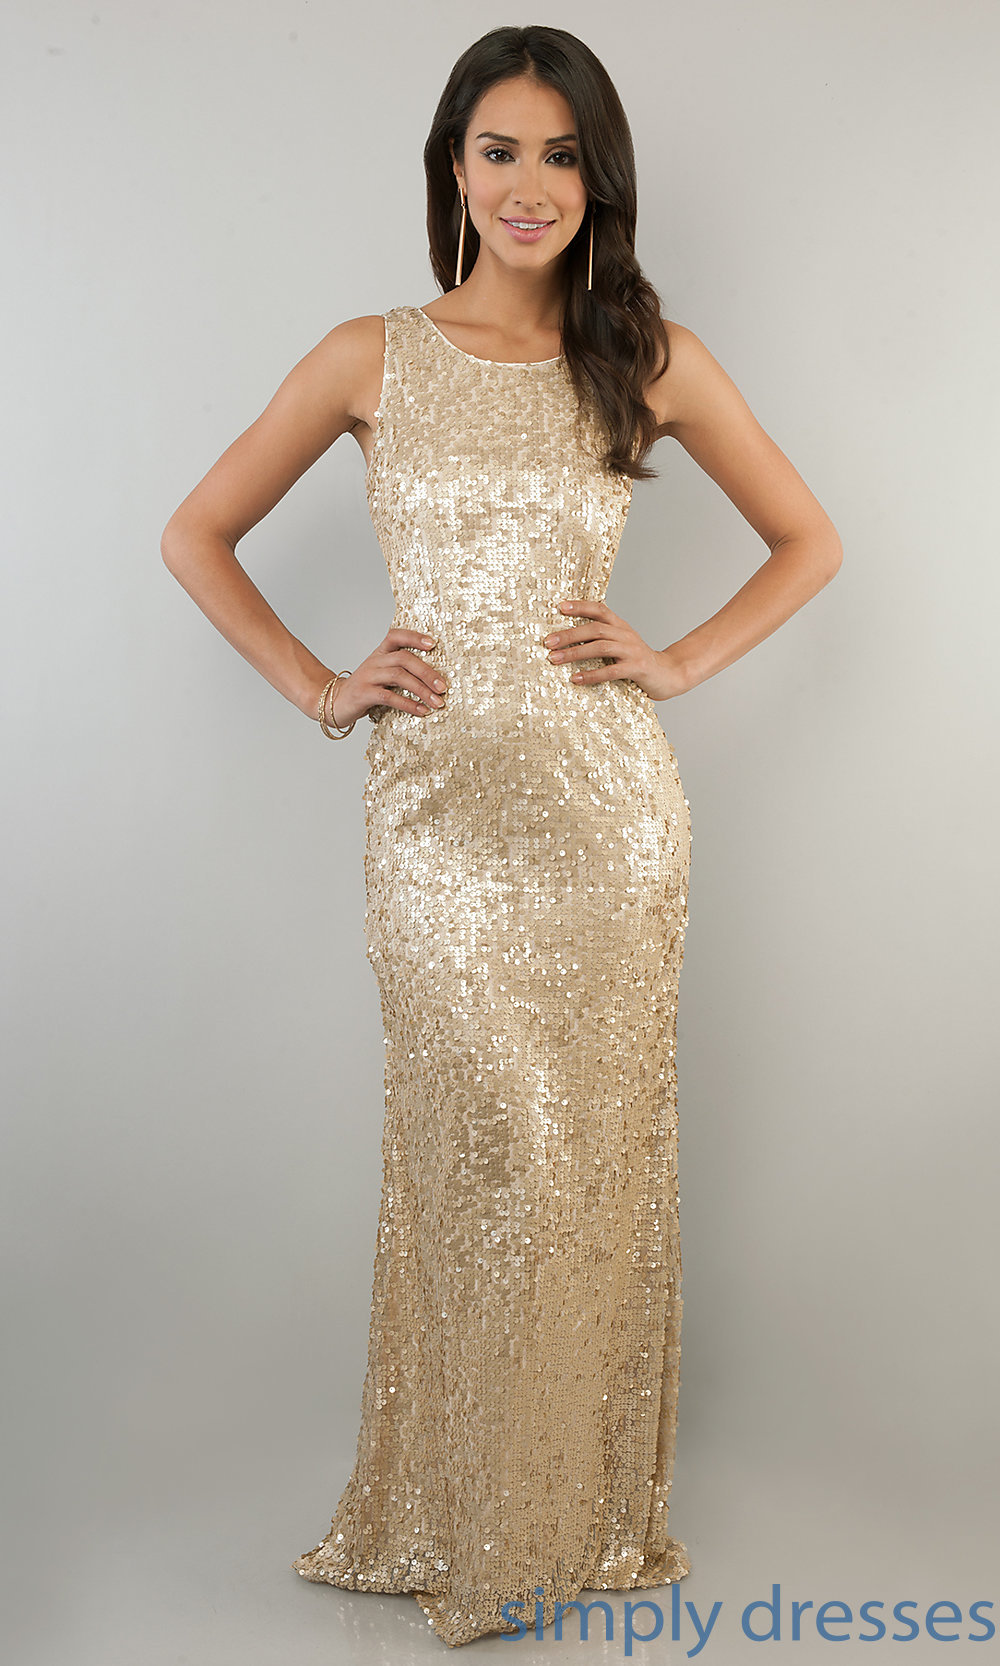 71205b34a4d Blue And Gold Sequin Prom Dress - Data Dynamic AG